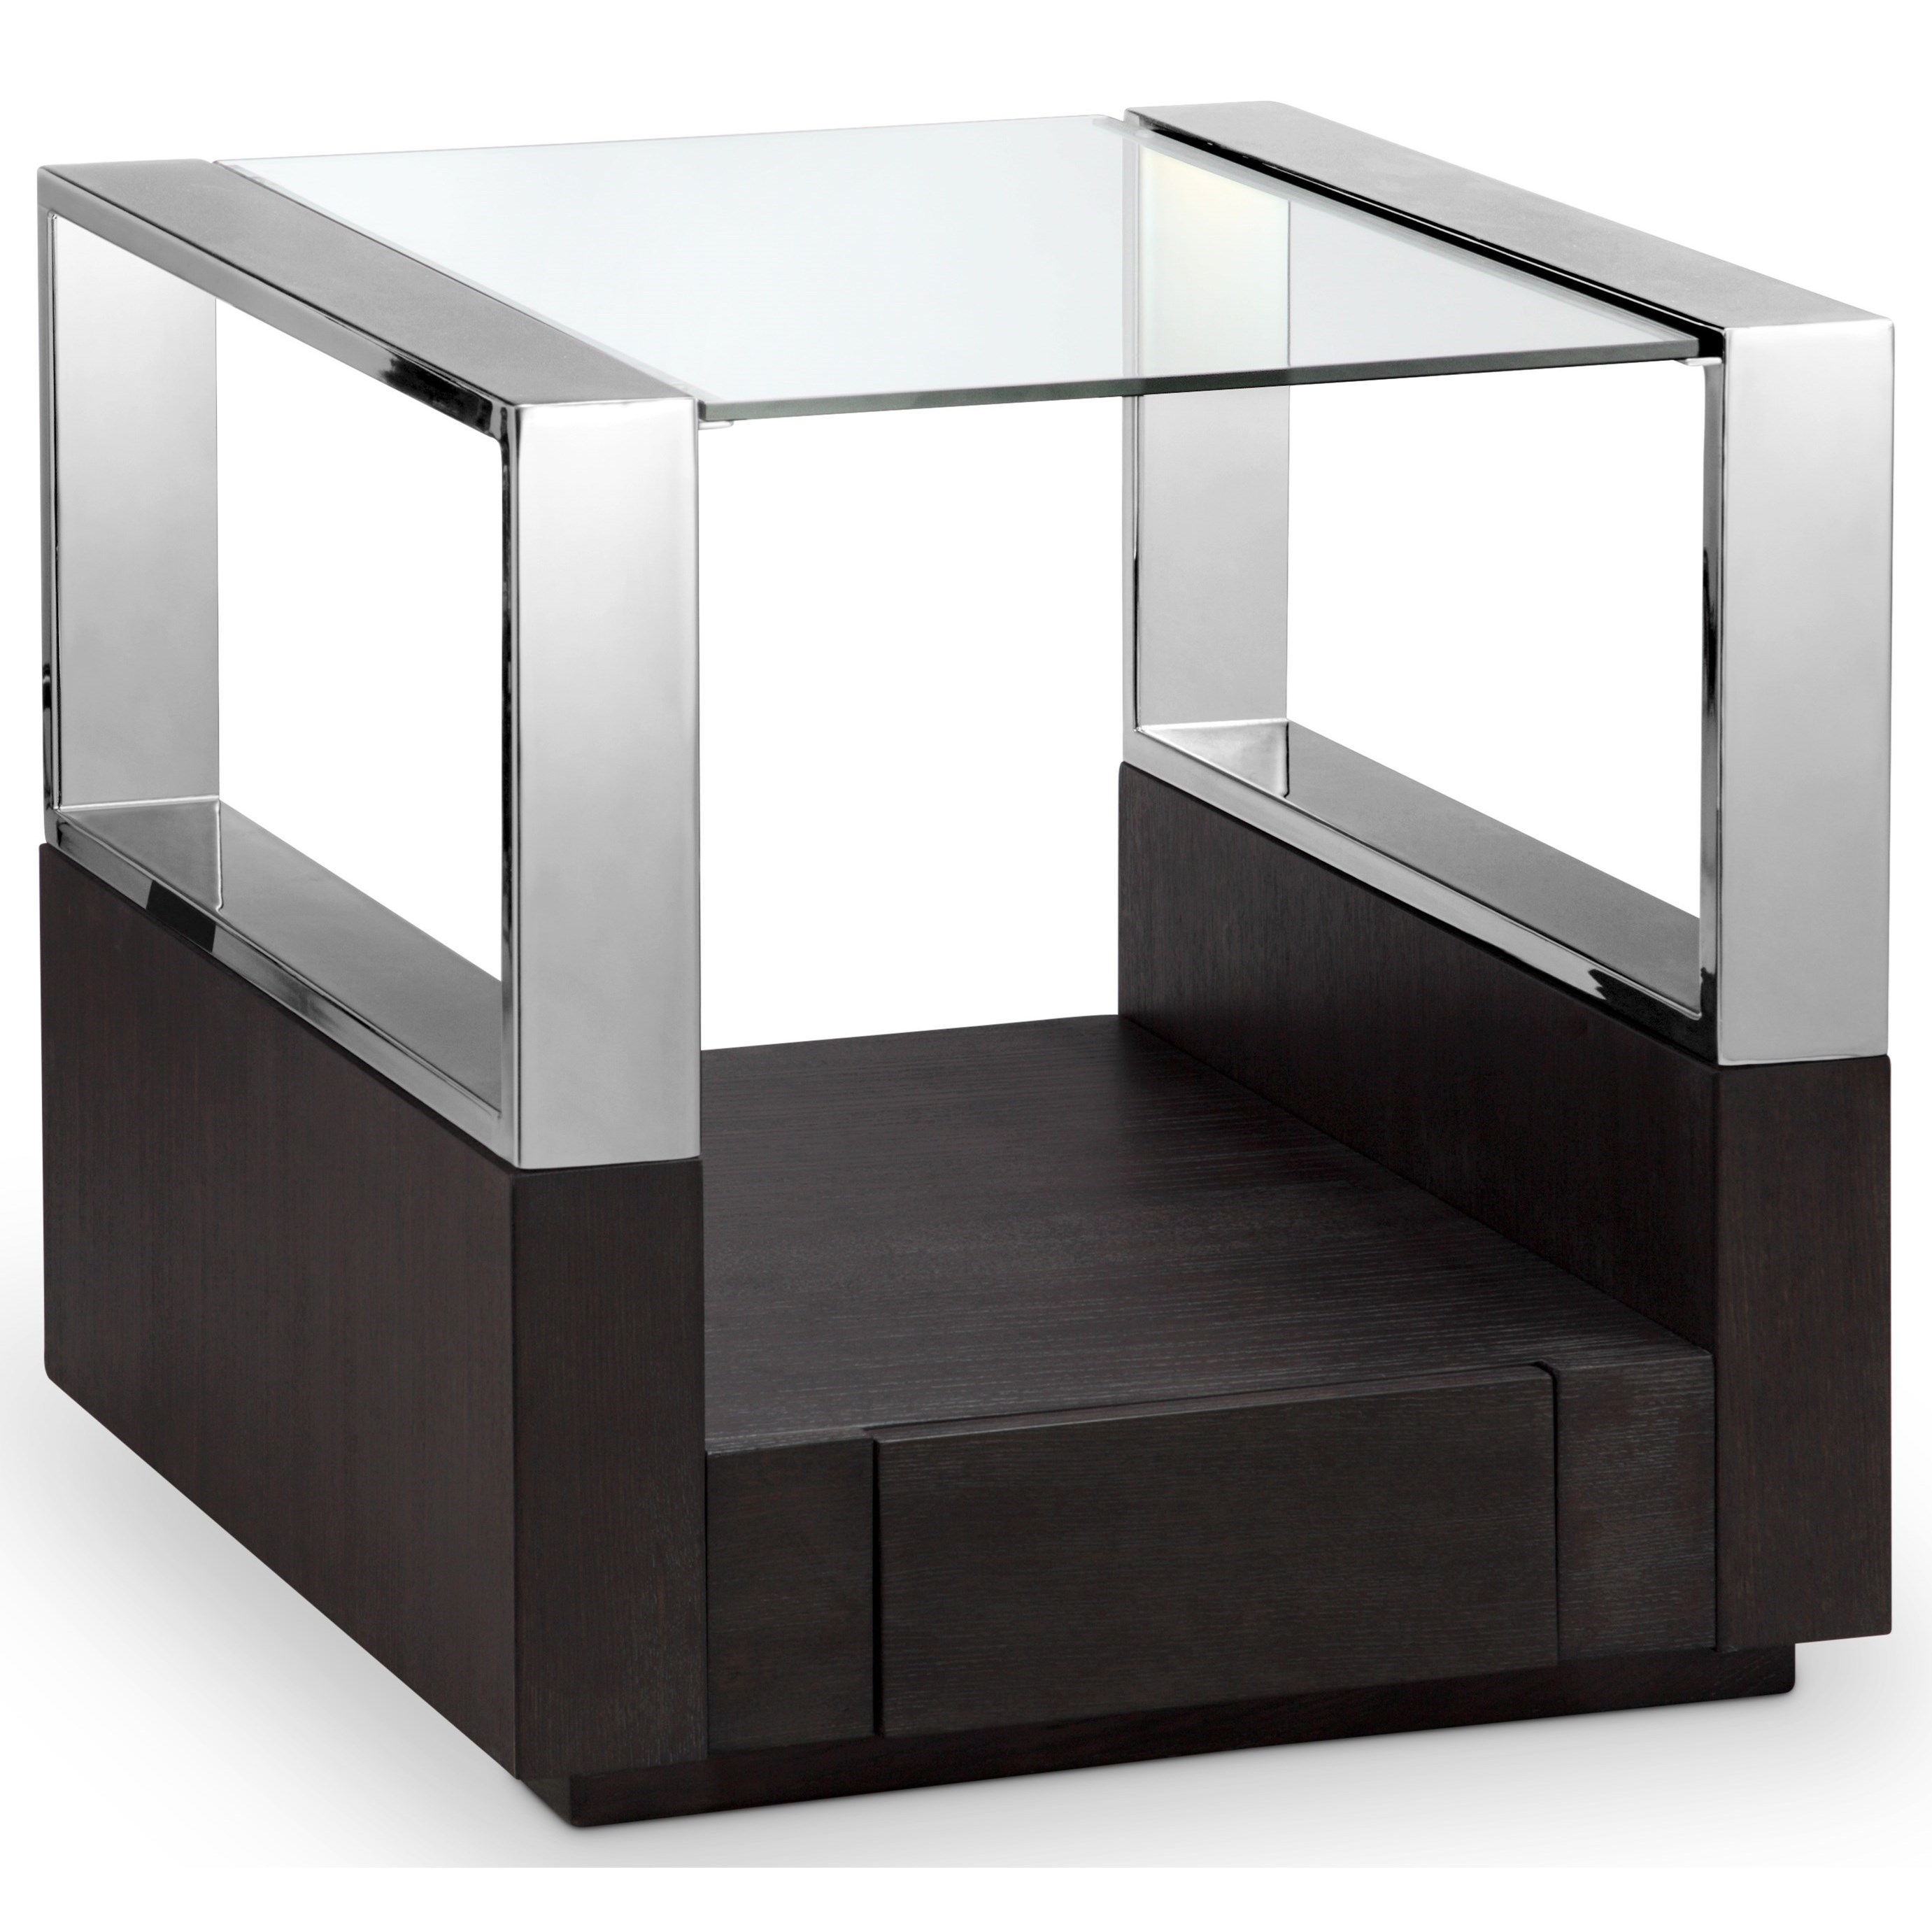 Revere MH Rectangular End Table by Magnussen Home at Darvin Furniture